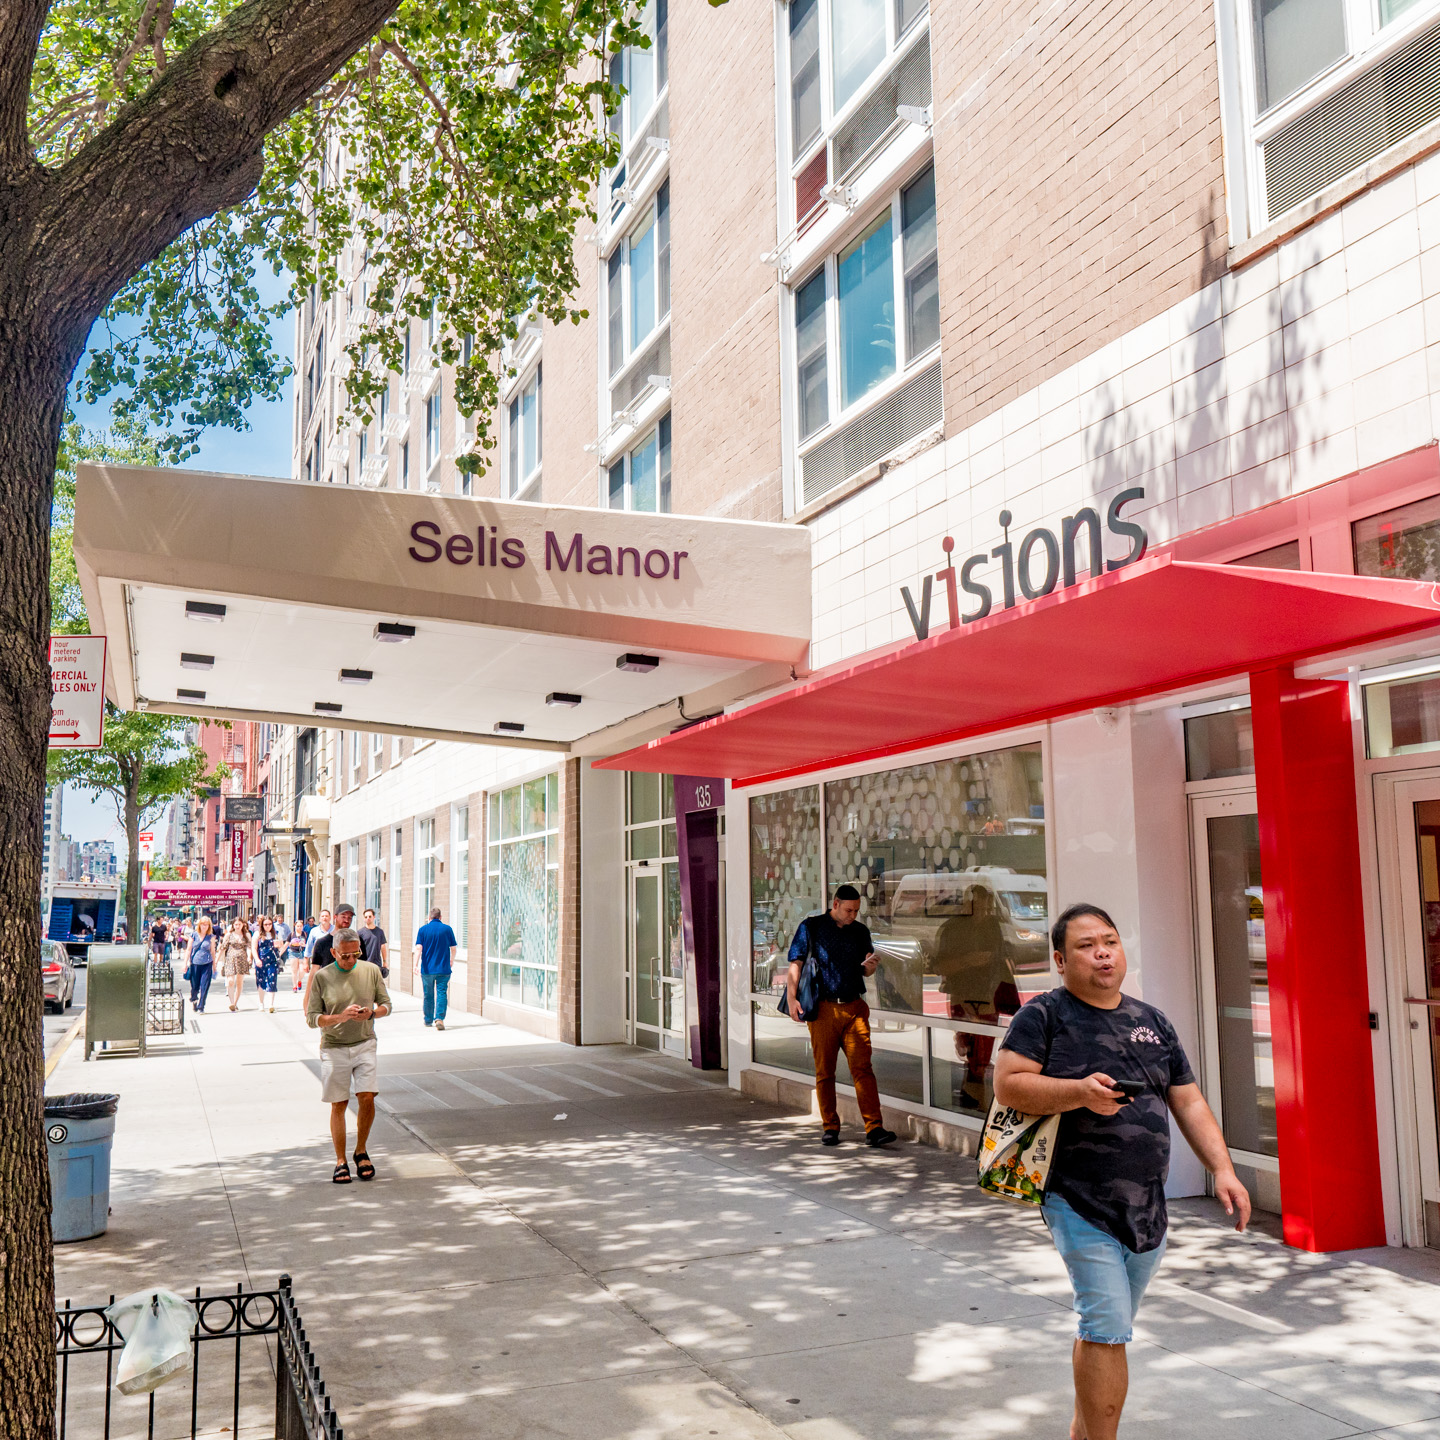 Image description: An exterior view of the entrance to VISIONS at Selis Manor. The front of a beige building has a large red awning with the VISIONS logo above it.